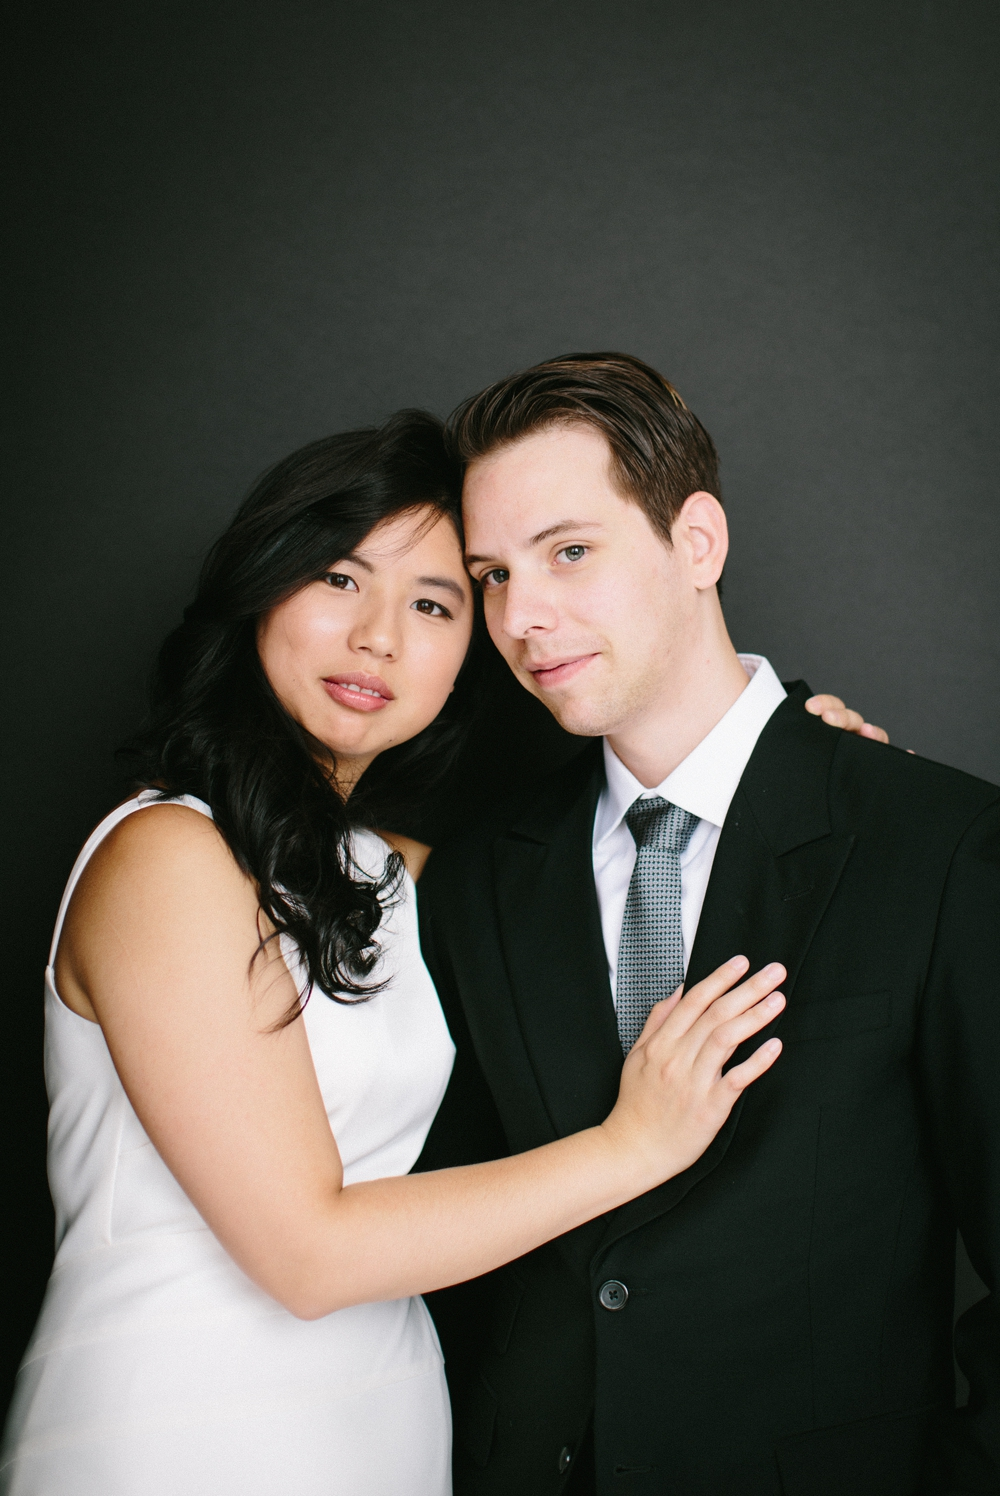 Seattle_Elopement_courthouse_wedding_Photographer 10.jpg